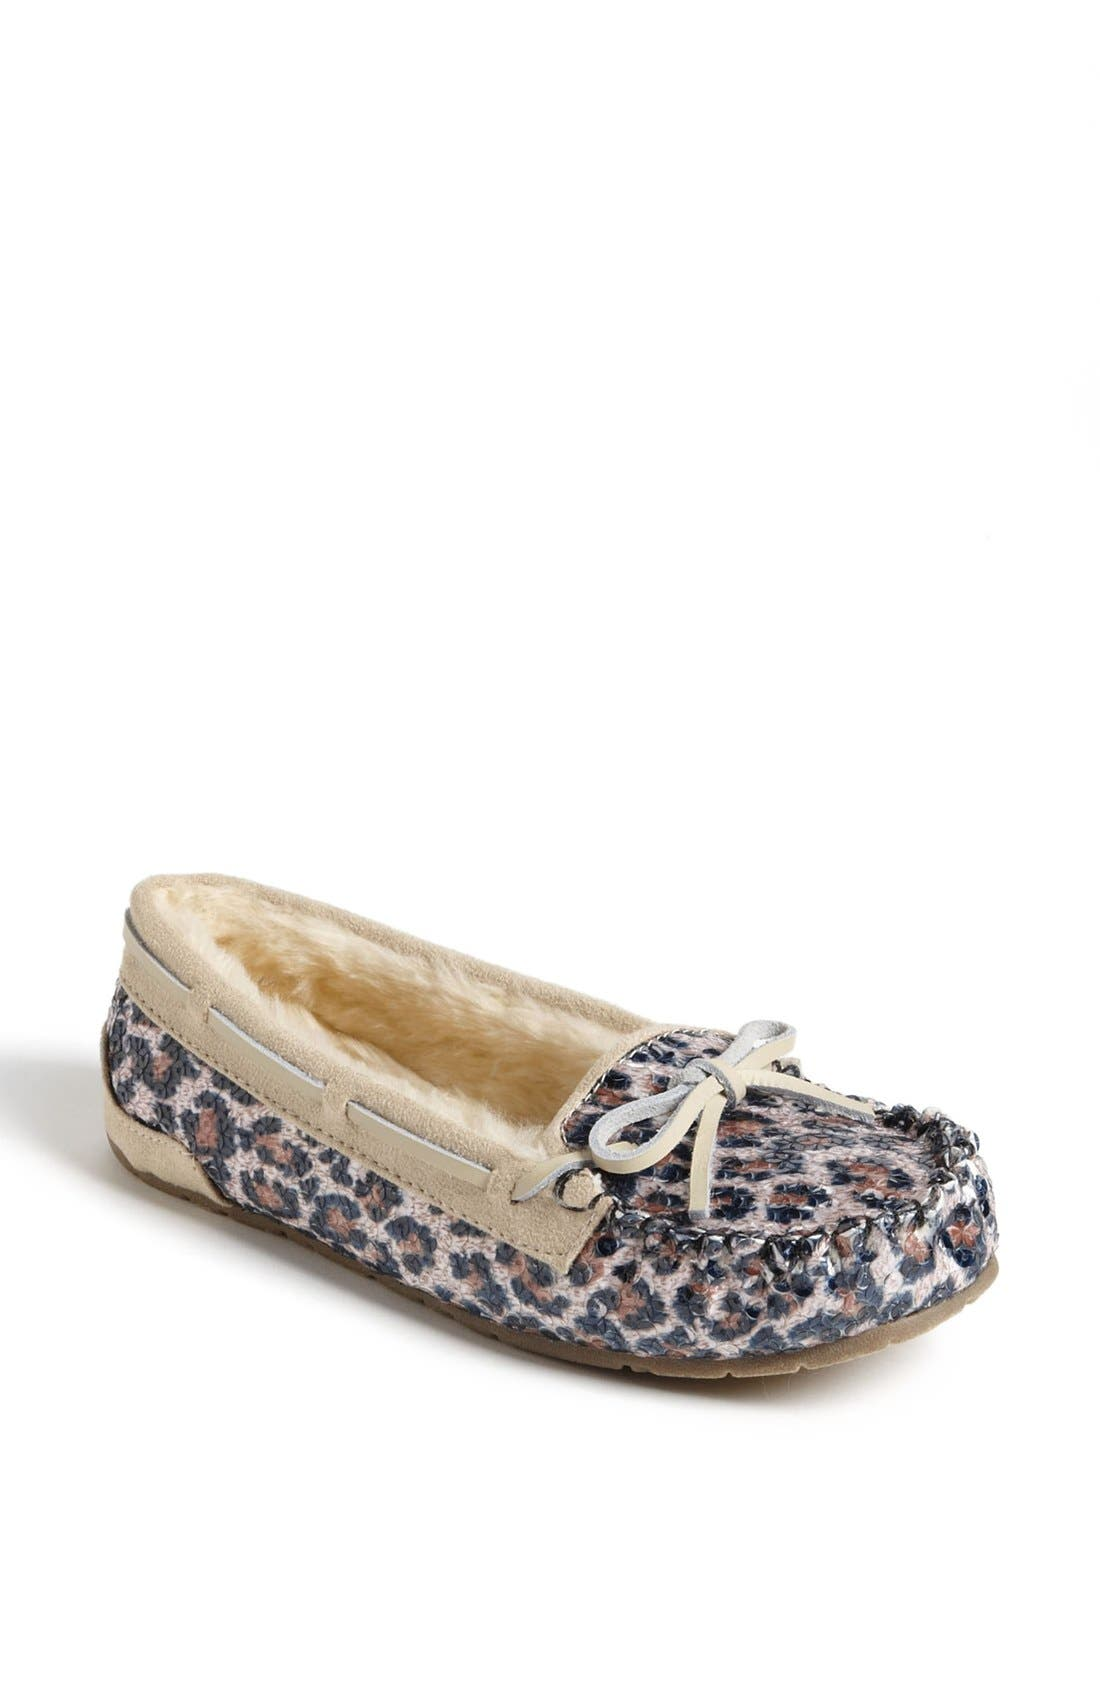 Main Image - BC Footwear 'All Decked Out' Slipper